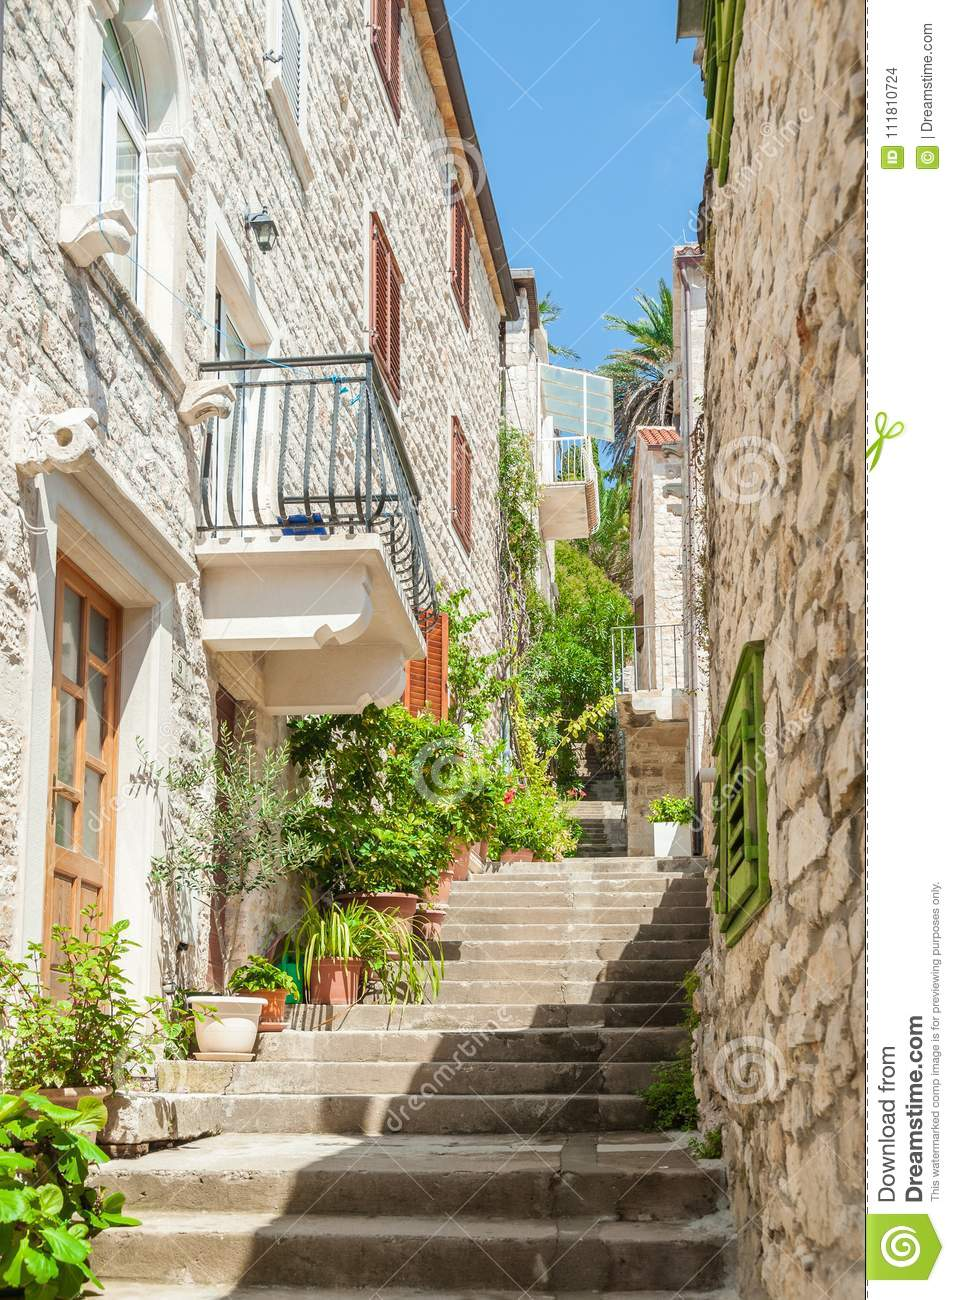 Narrow Stairs Alley Old Masonry Buildings Stock Photo Image Of